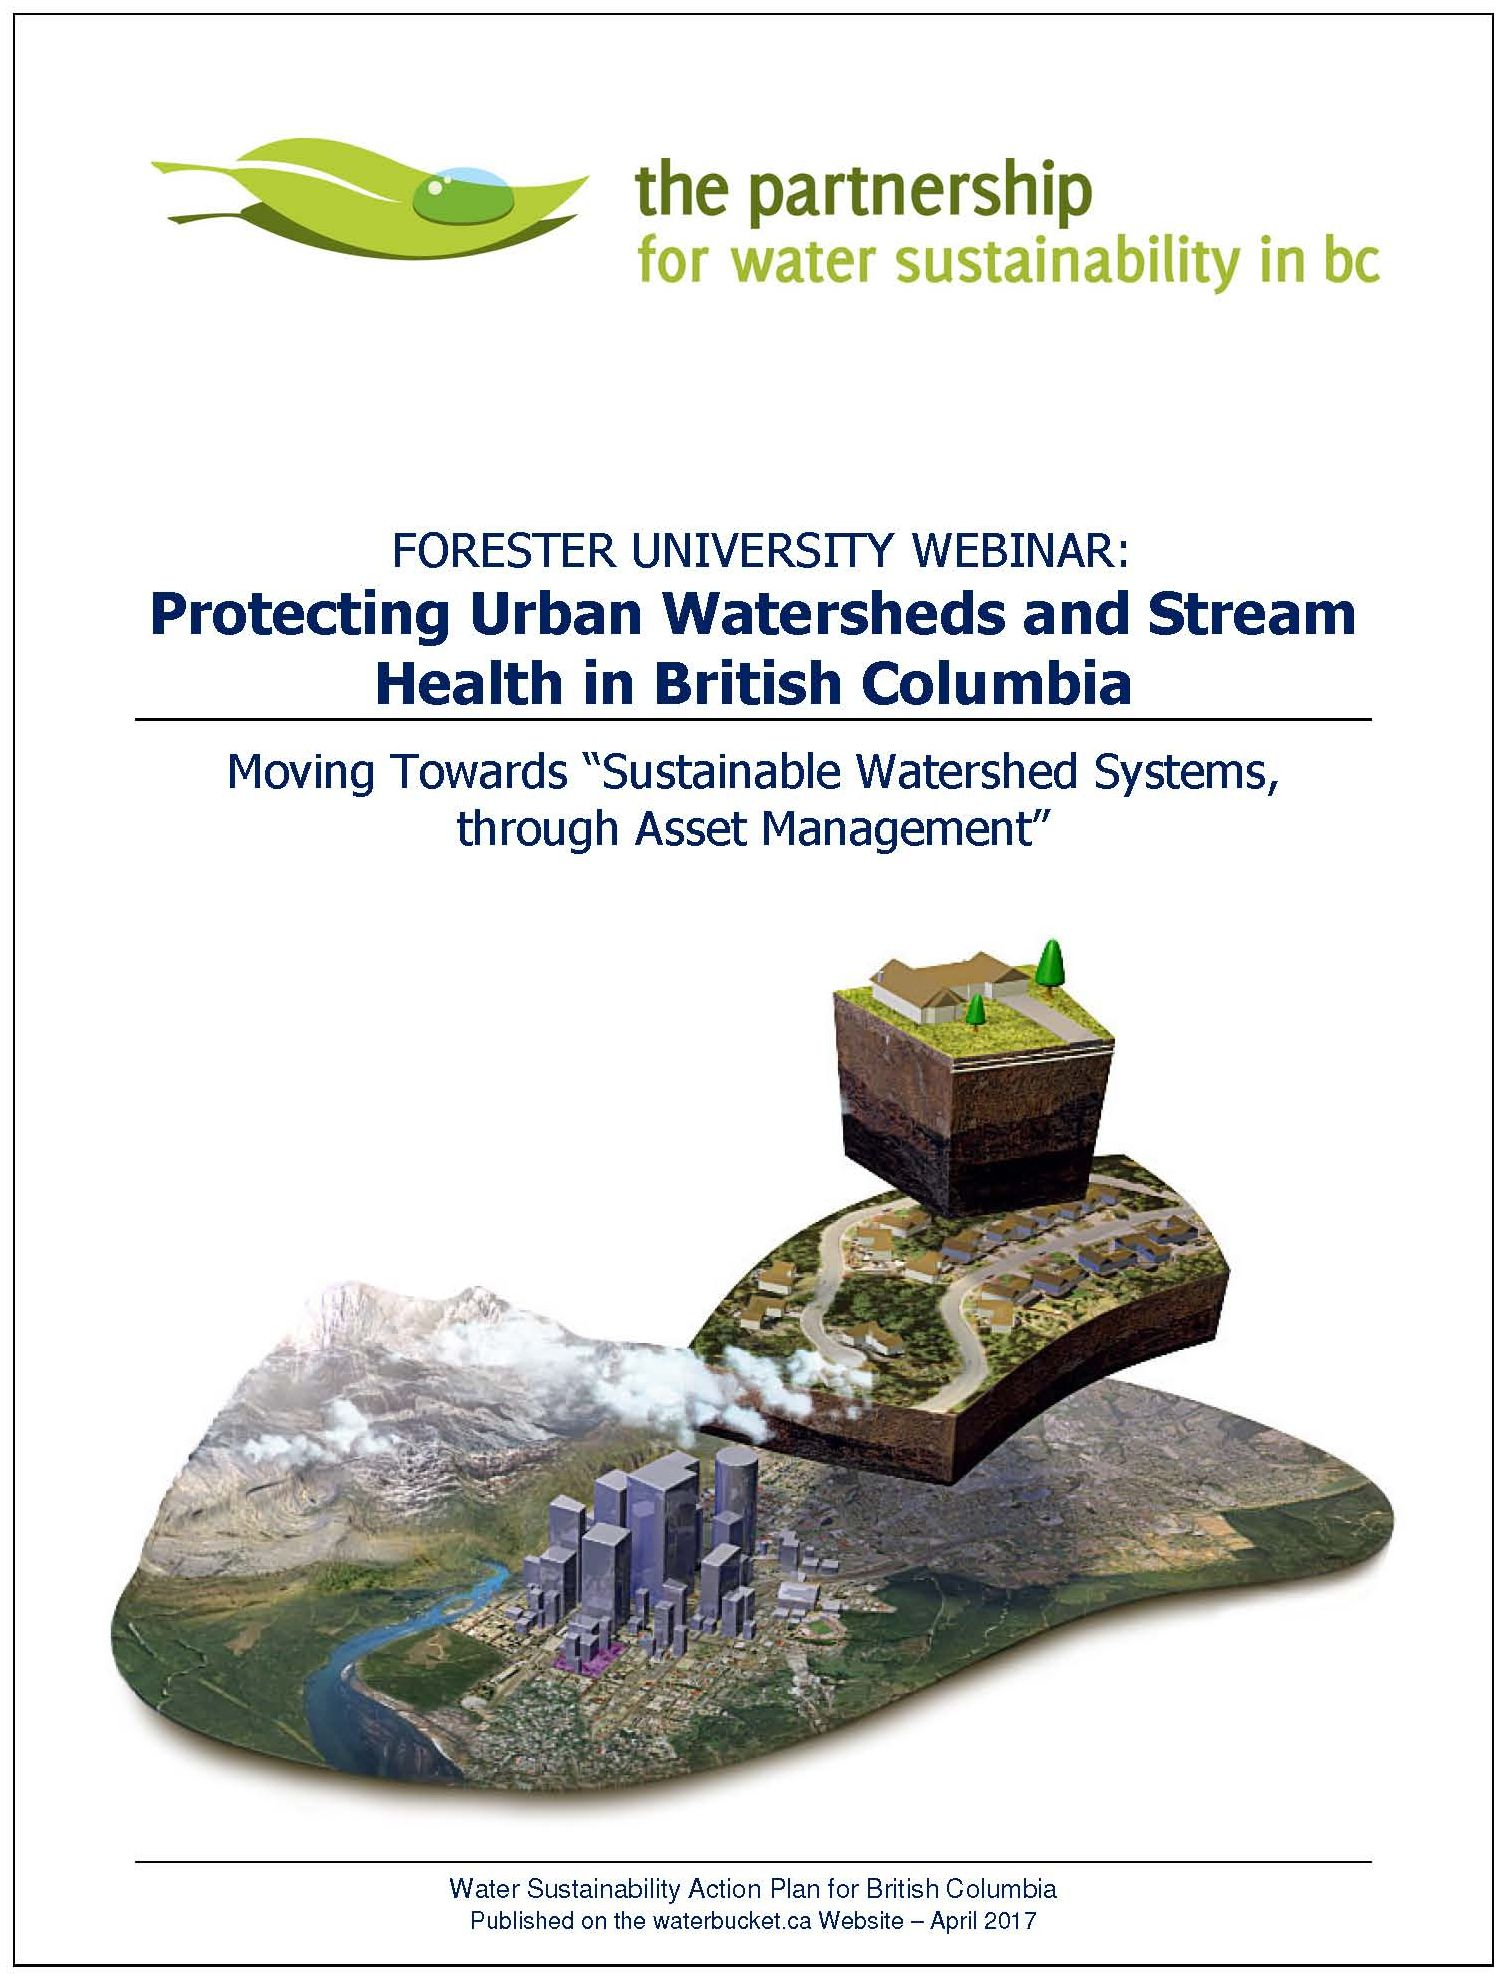 Forester-Webinar_Water-Balance-Methodology_Apr2017_cover